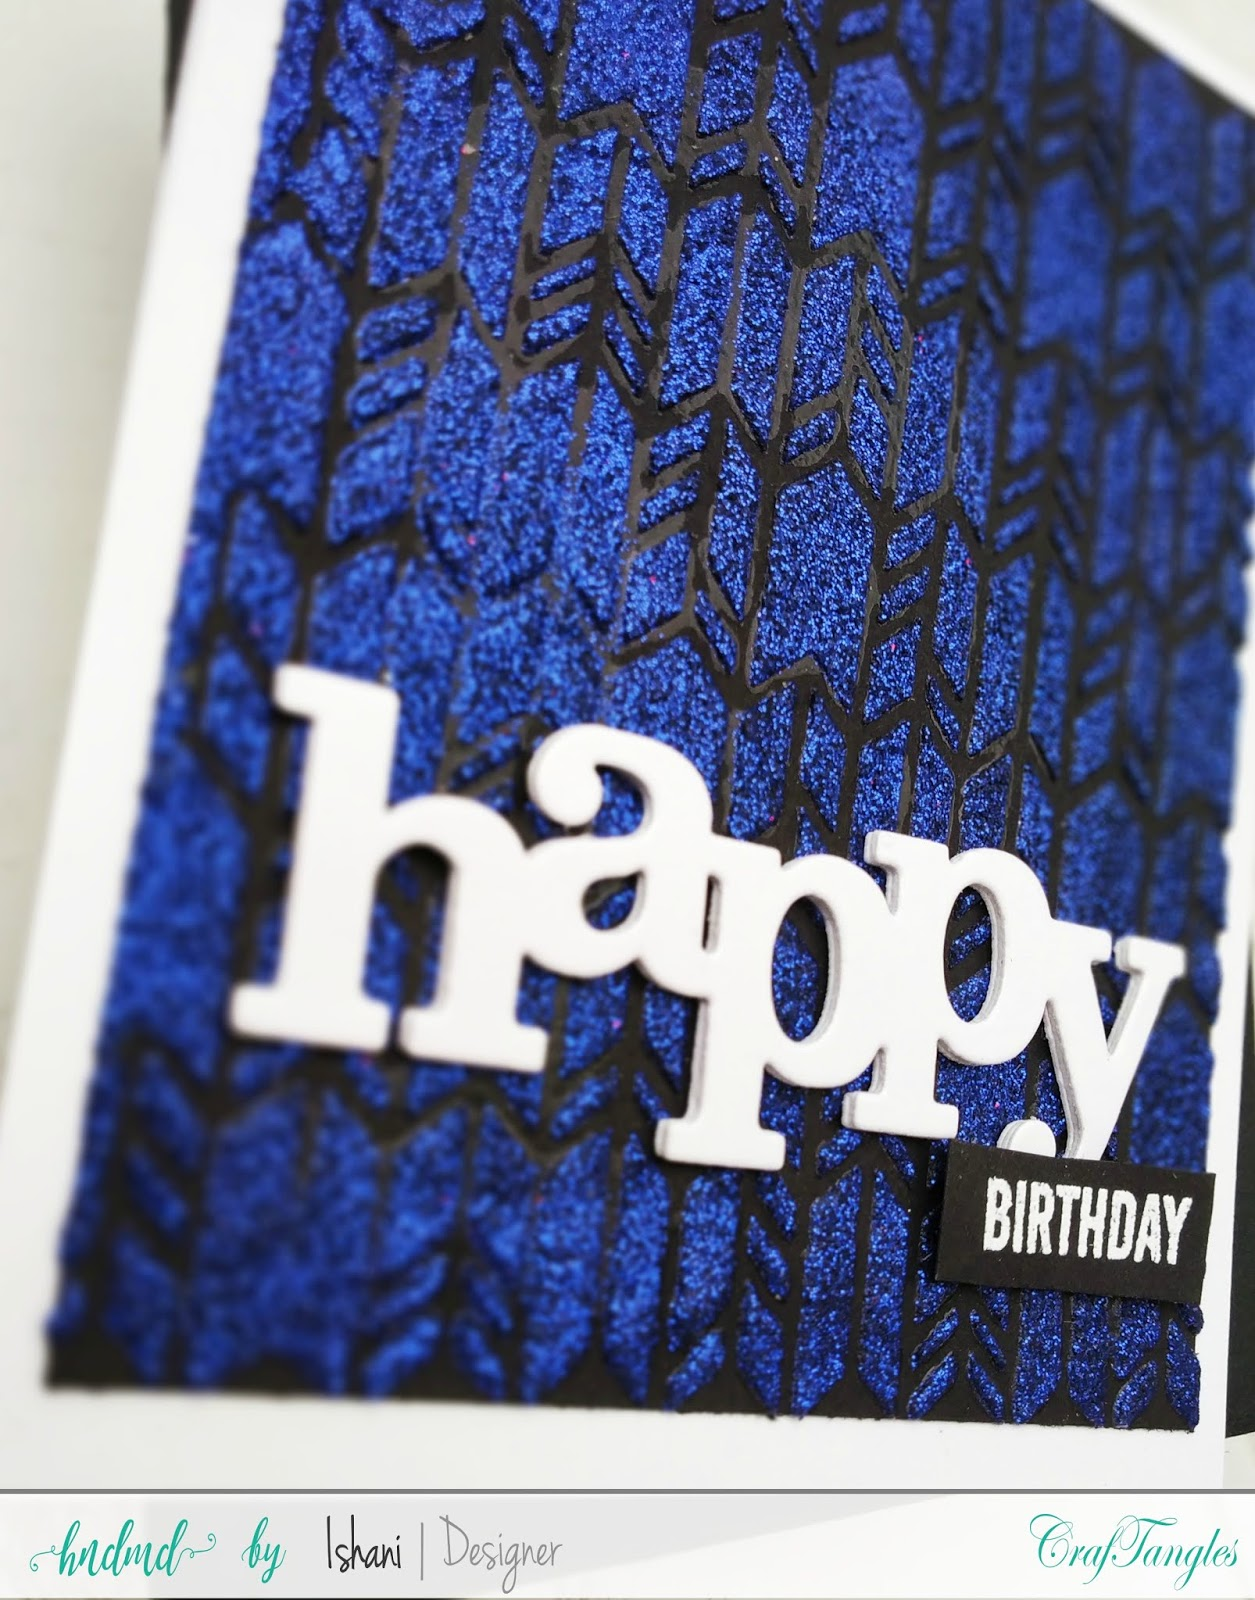 Craftangles herringbone stencil, Stenciled Birthday card, Craftangles glimmer paste, Craftangles stencils cards, cards with stencil, cards with shimmer paste, stenciled card, birthday card with stencil, quillish